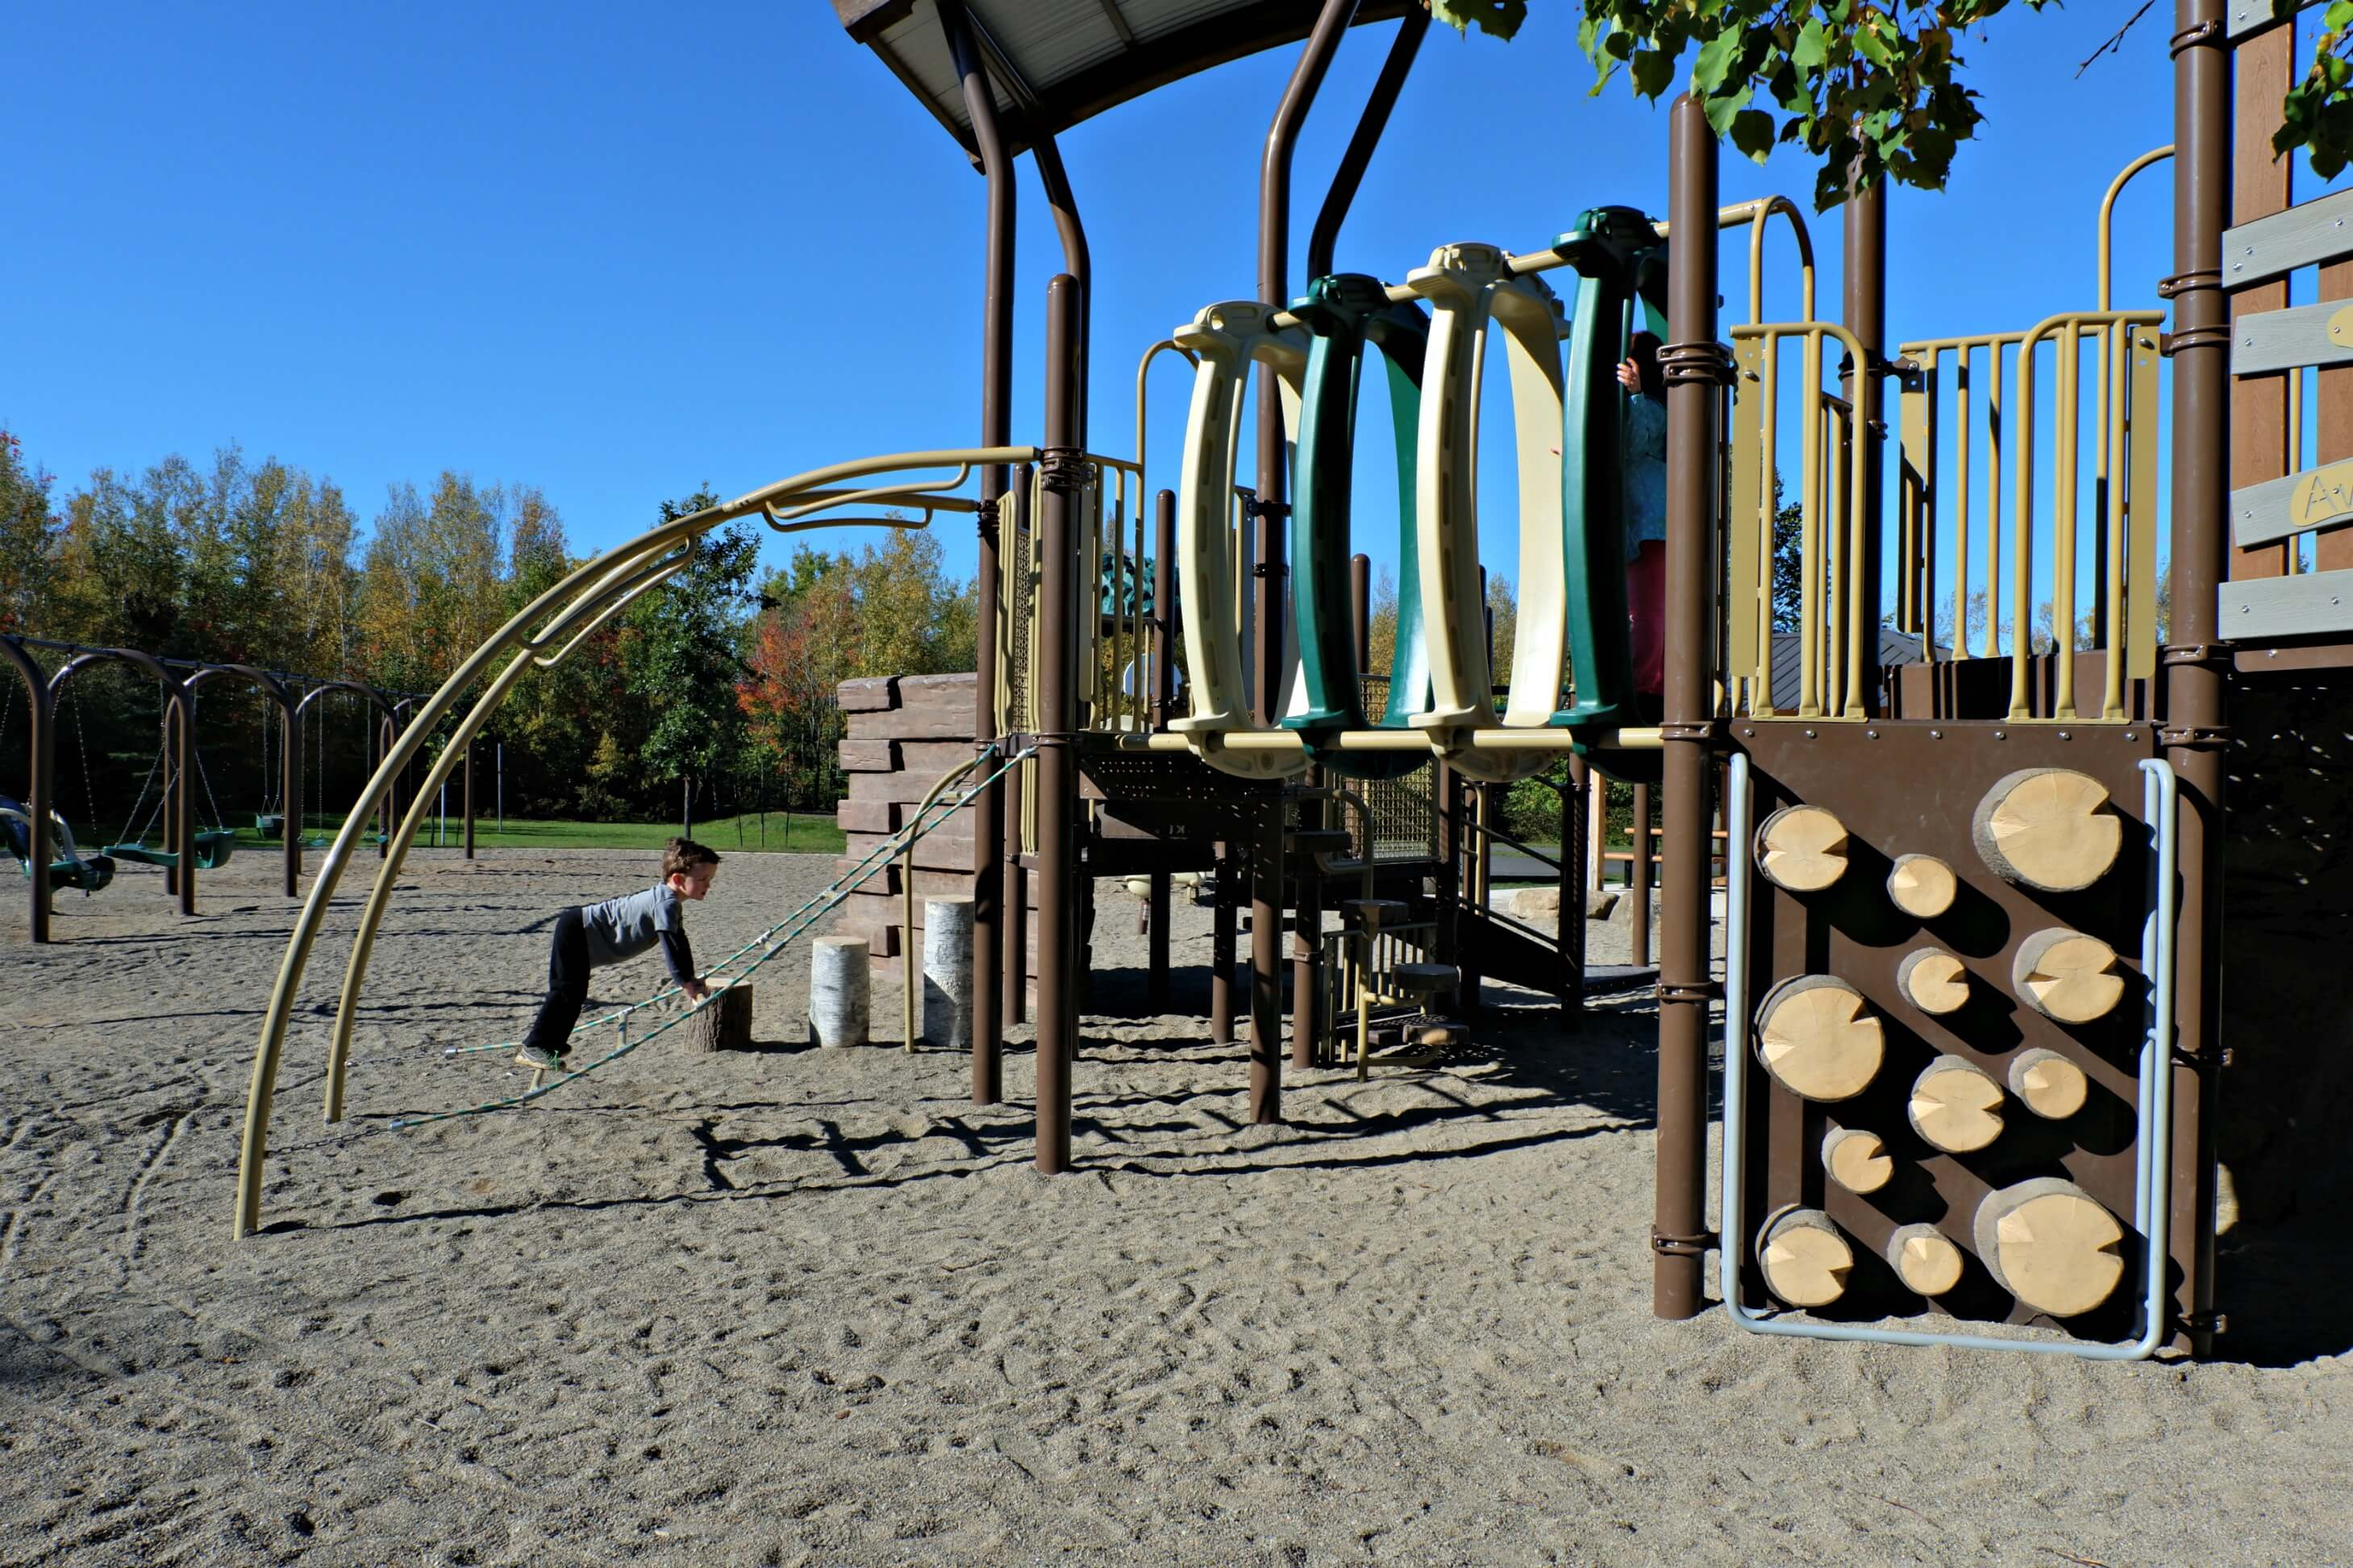 maplehurst park playground moncton riverview dieppe best play new brunswick climbing